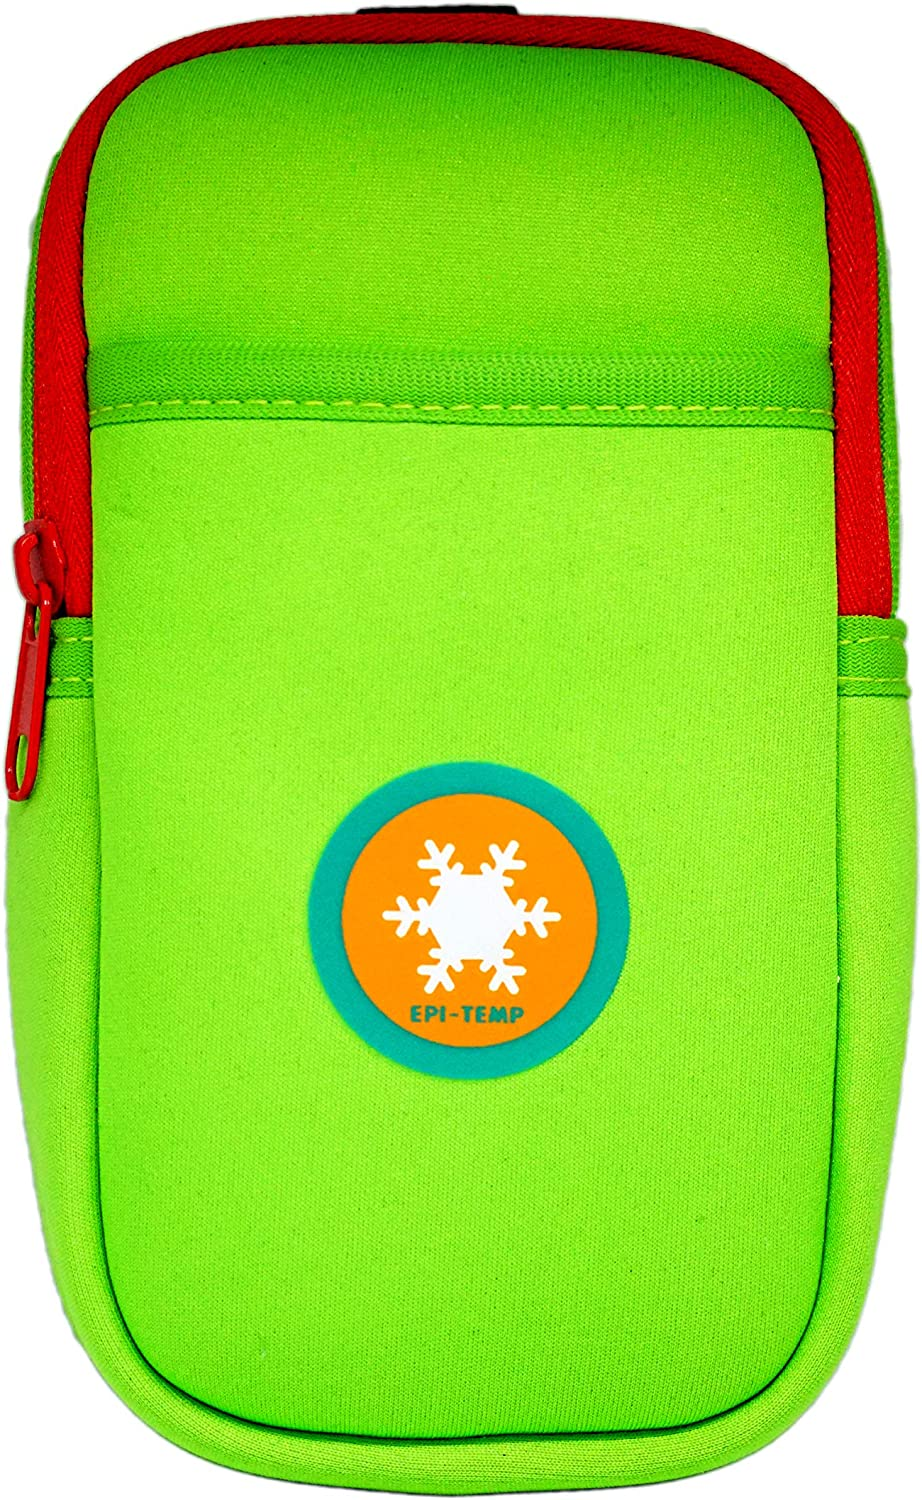 EPI-TEMP Epipen Insulated Case for Kids, Adults – Smart Carrying Pouch, Storage Bag, Powered by PureTemp Phase Change Material to Keep Epinephrine in Safe Temperature Range (Green)